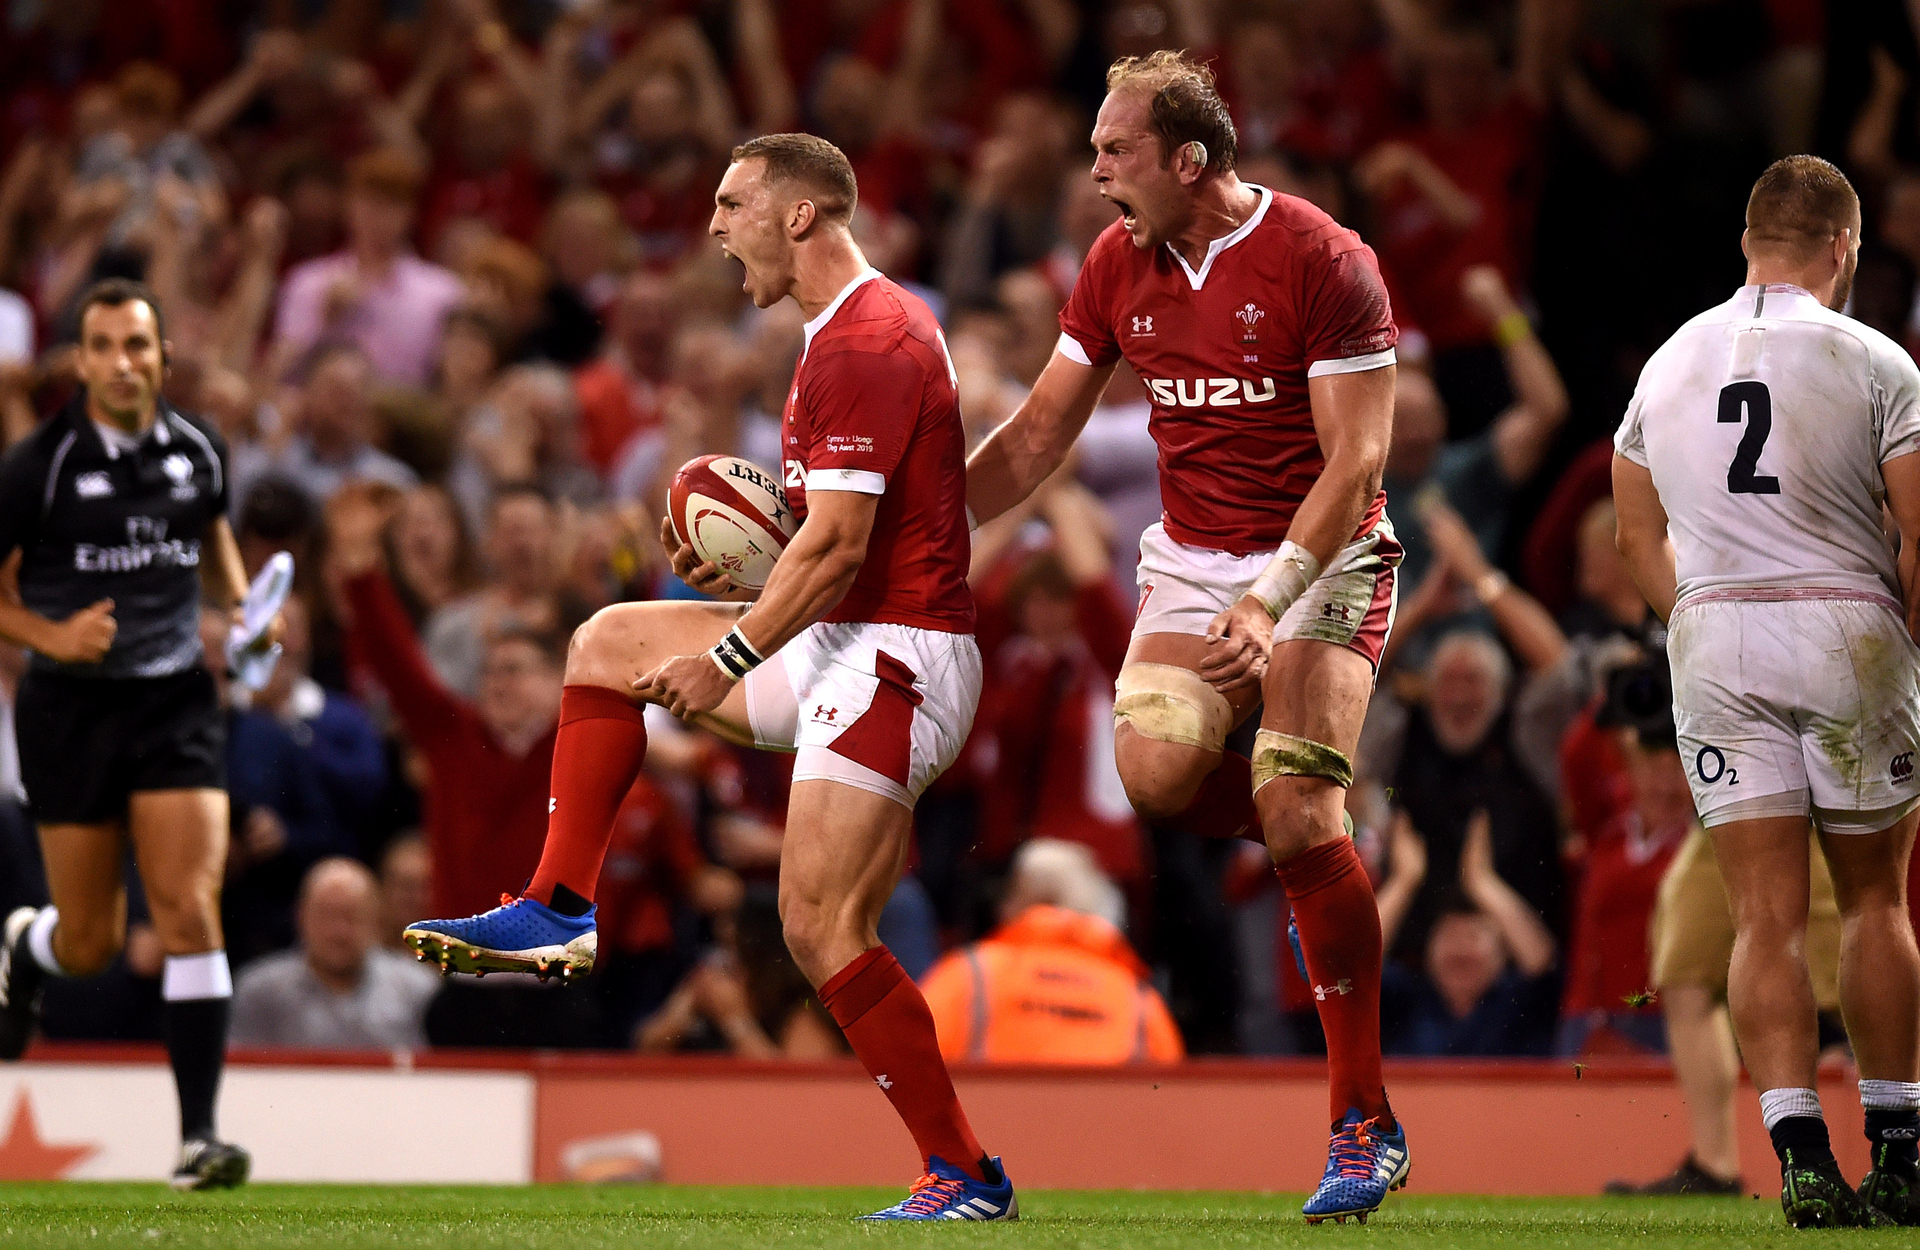 World Rugby move to stop quick penalties before temporary replacements after Wales v England confusion